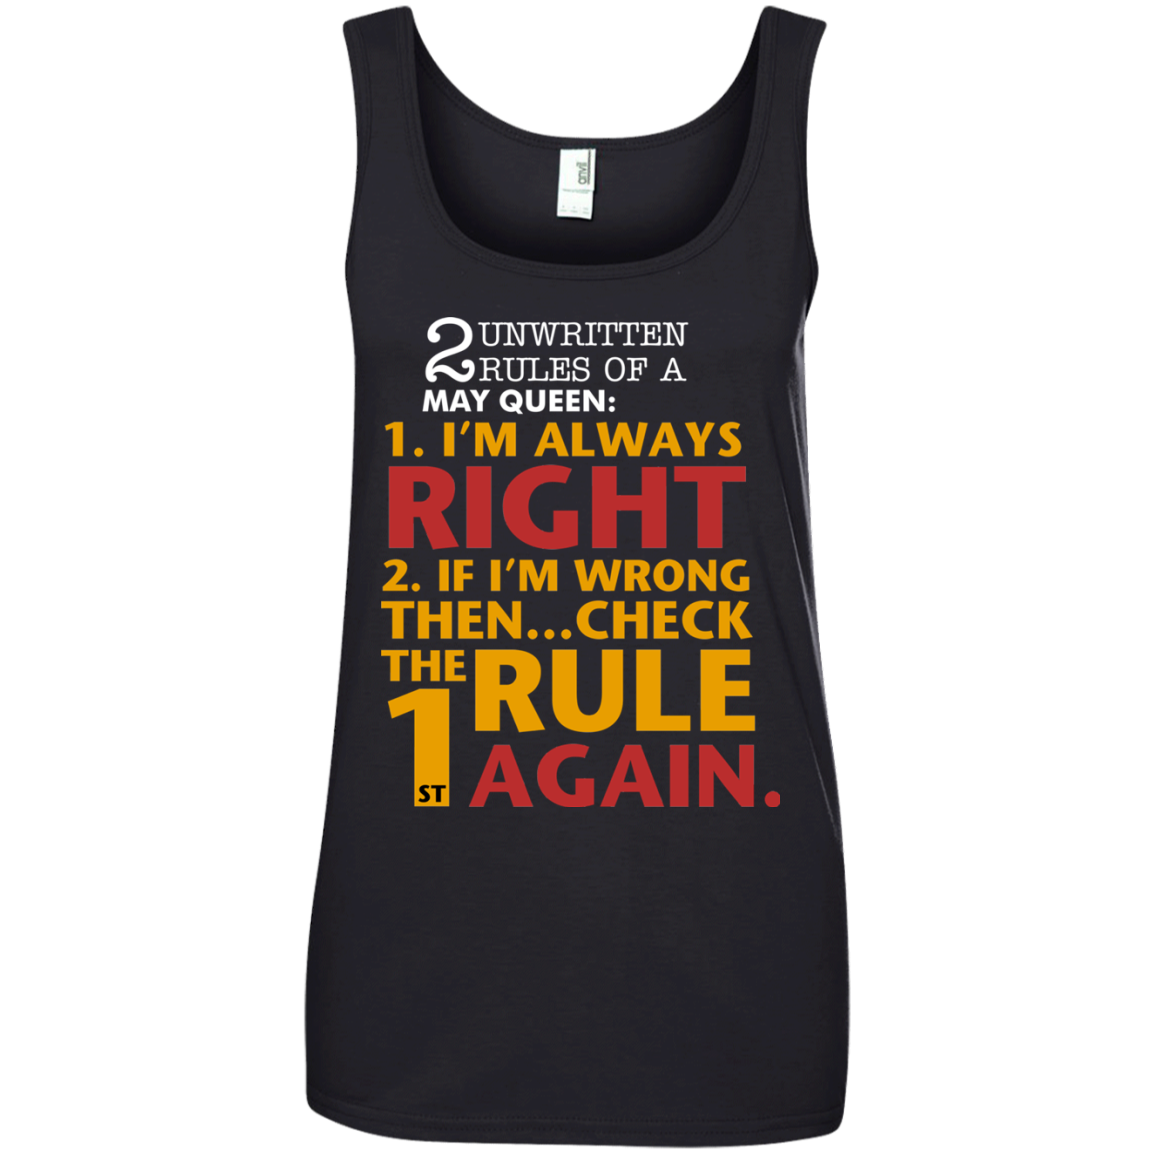 2 unwritten rules of a May Queen I'm always right T shirt Hoodie Sweater Tank Top 882